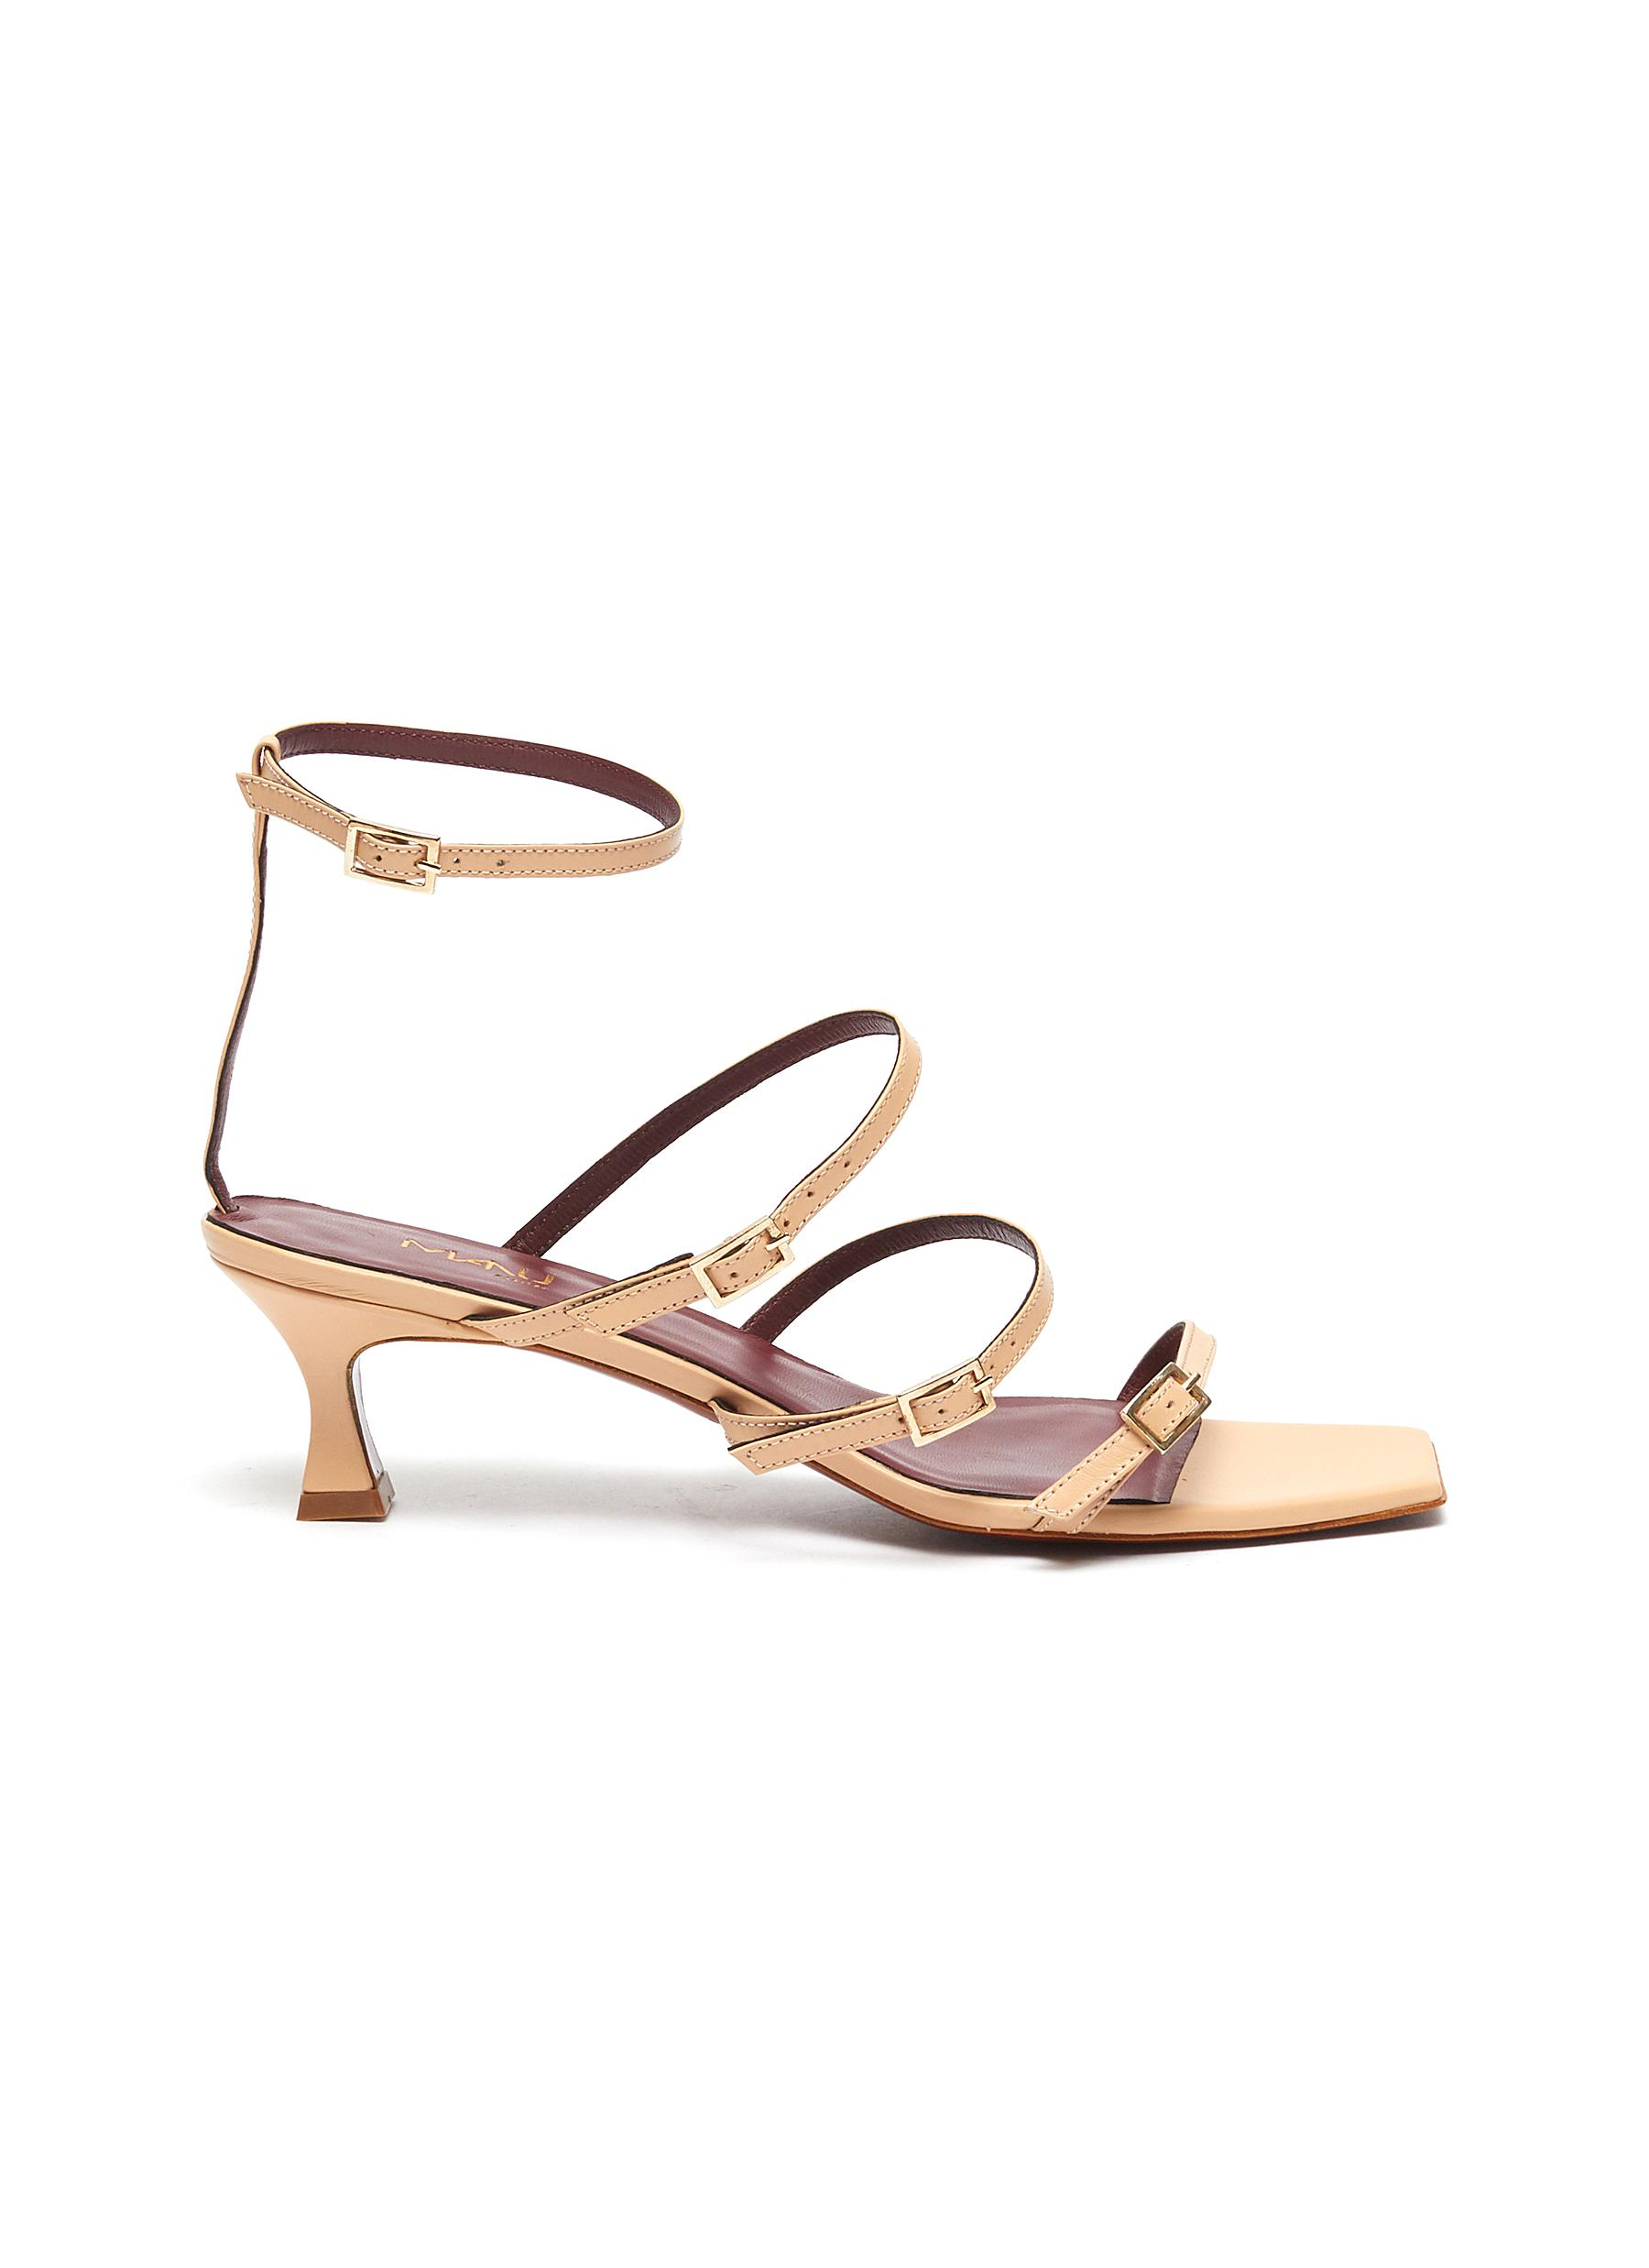 Naomi strappy leather sandals by Manu Atelier